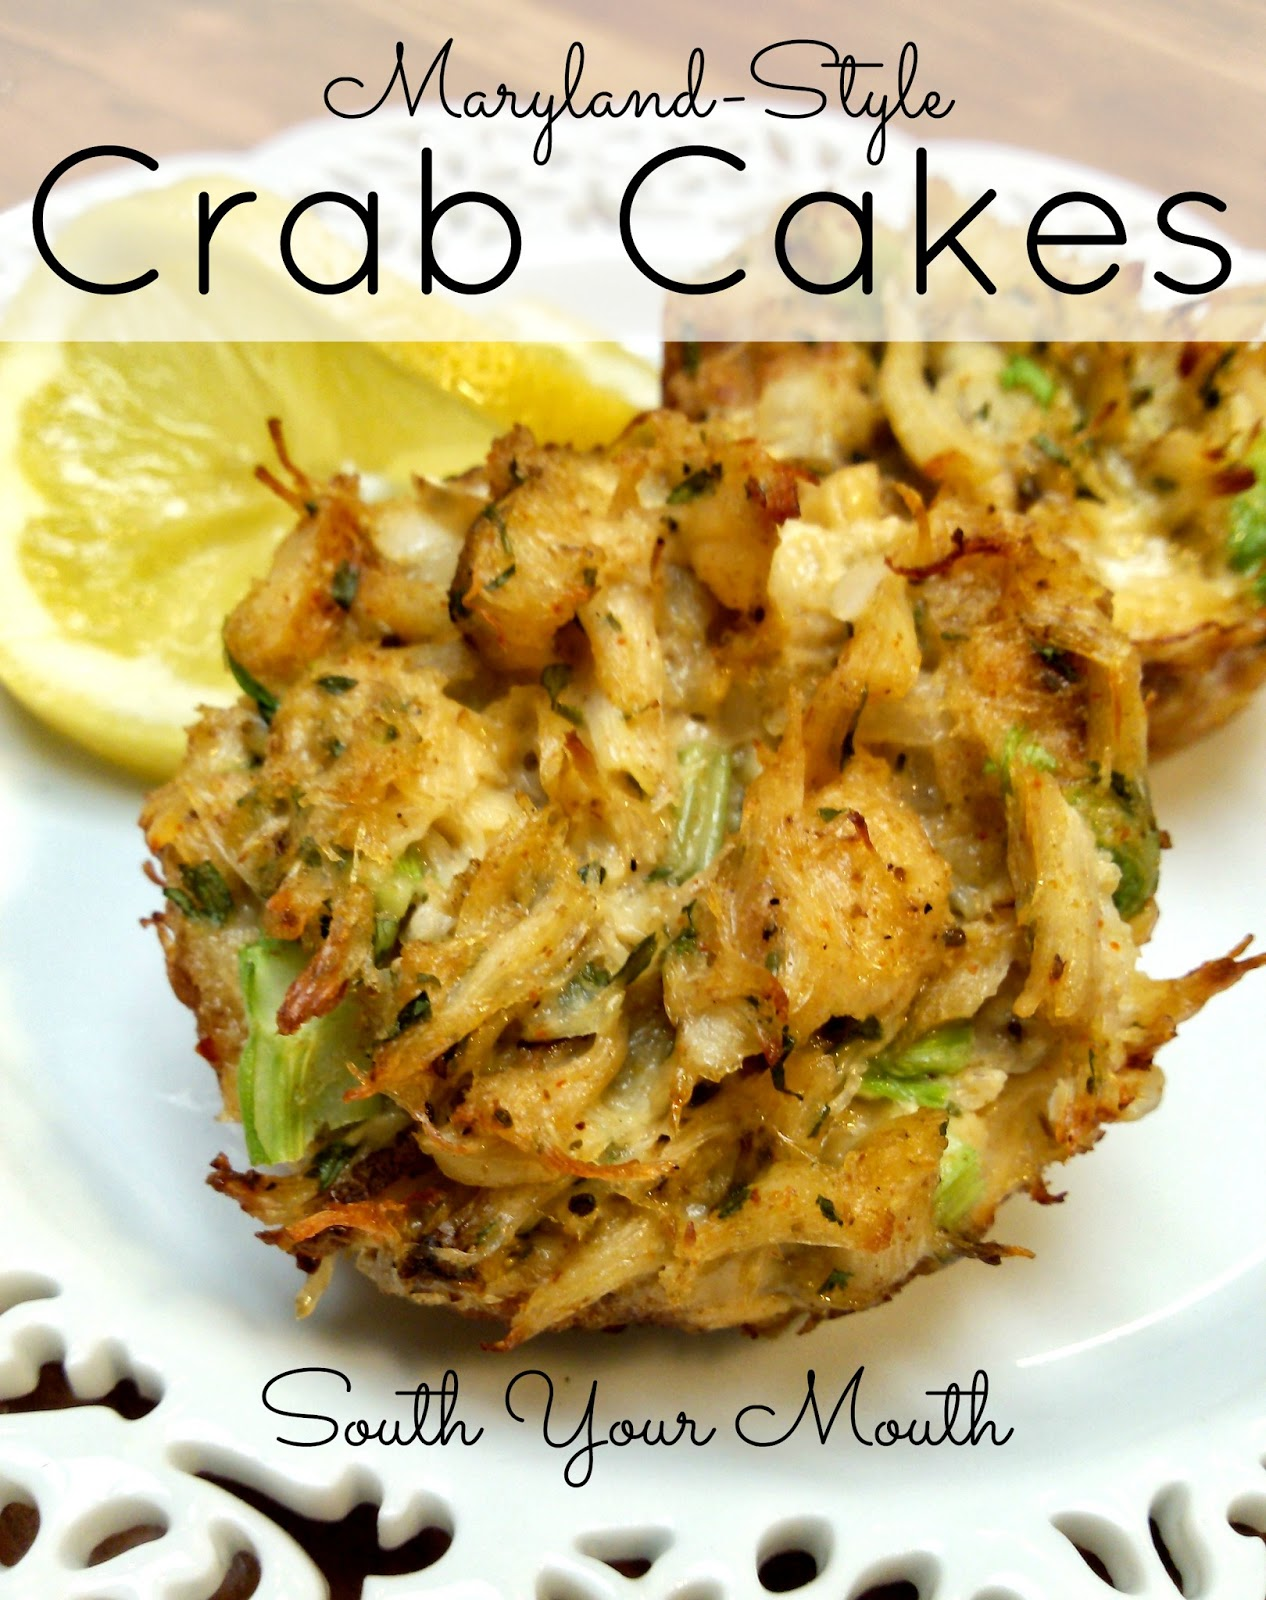 Easy crab cakes recipe baked